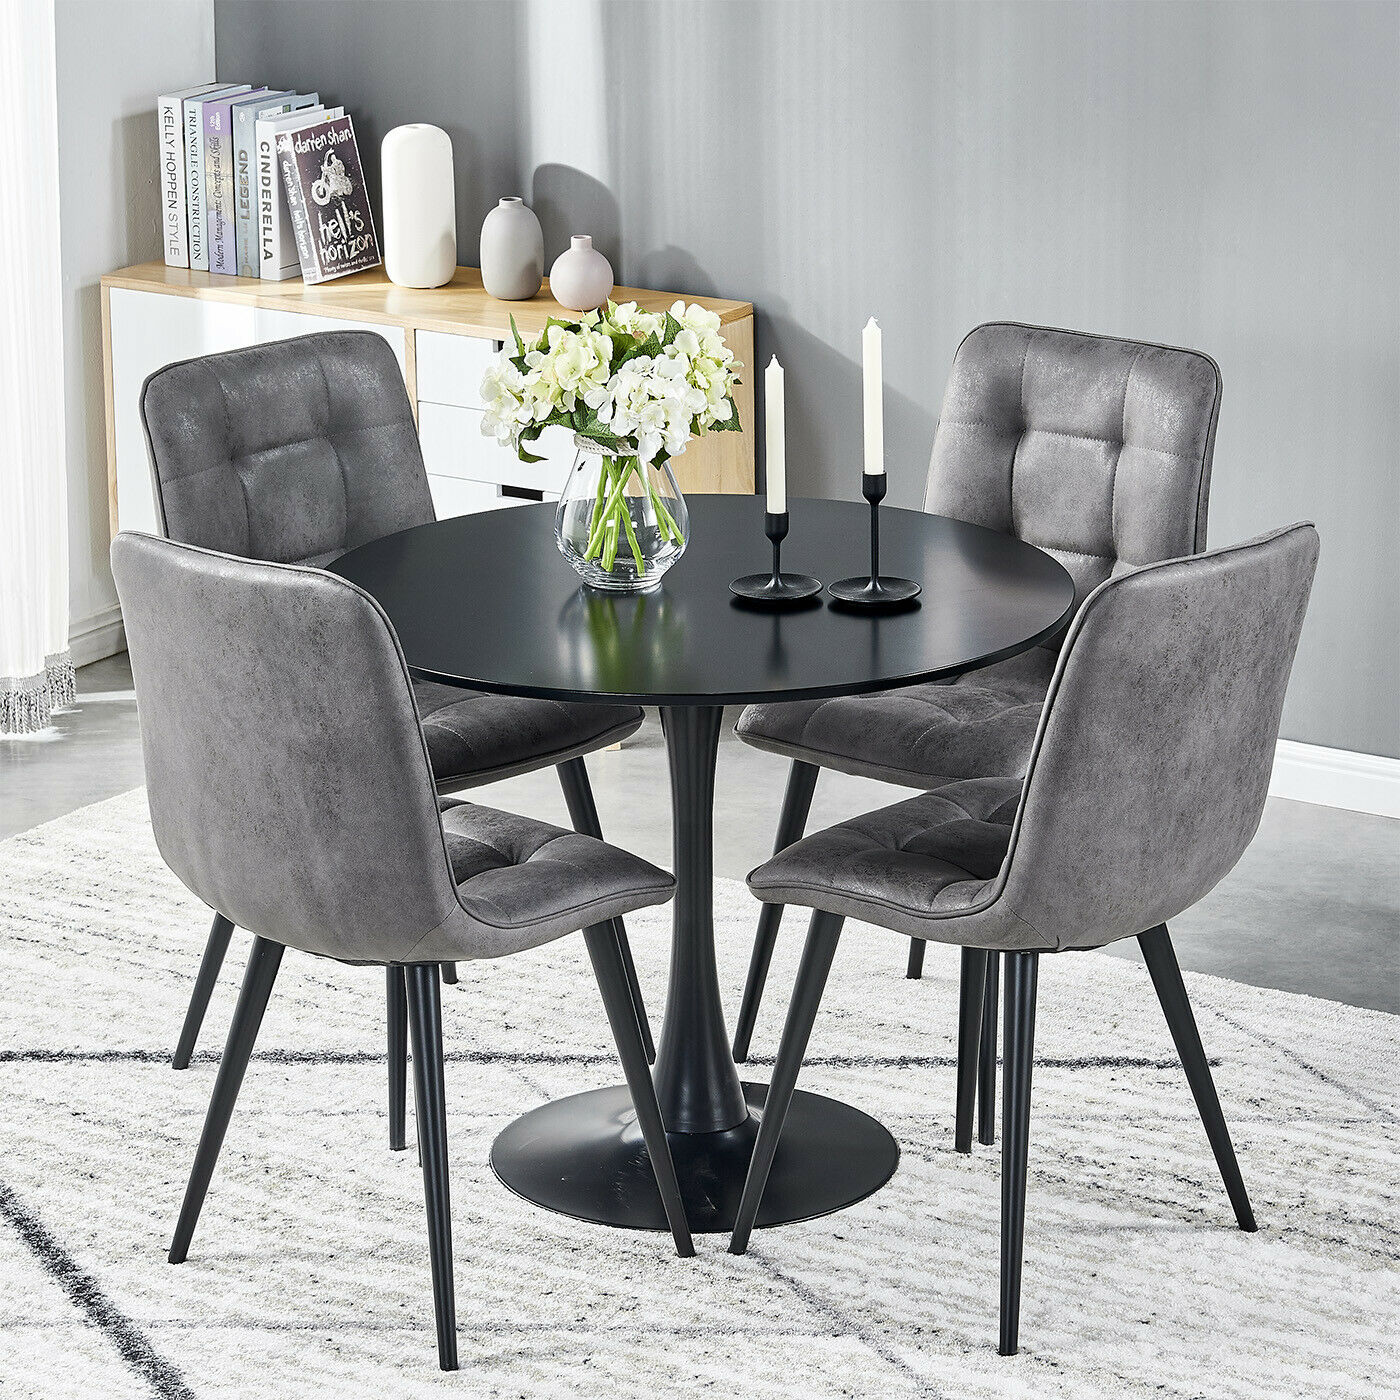 Small Round Dining Table And 4 Faux Suede Fabric Chairs Black Legs Kitchen Sets Ebay